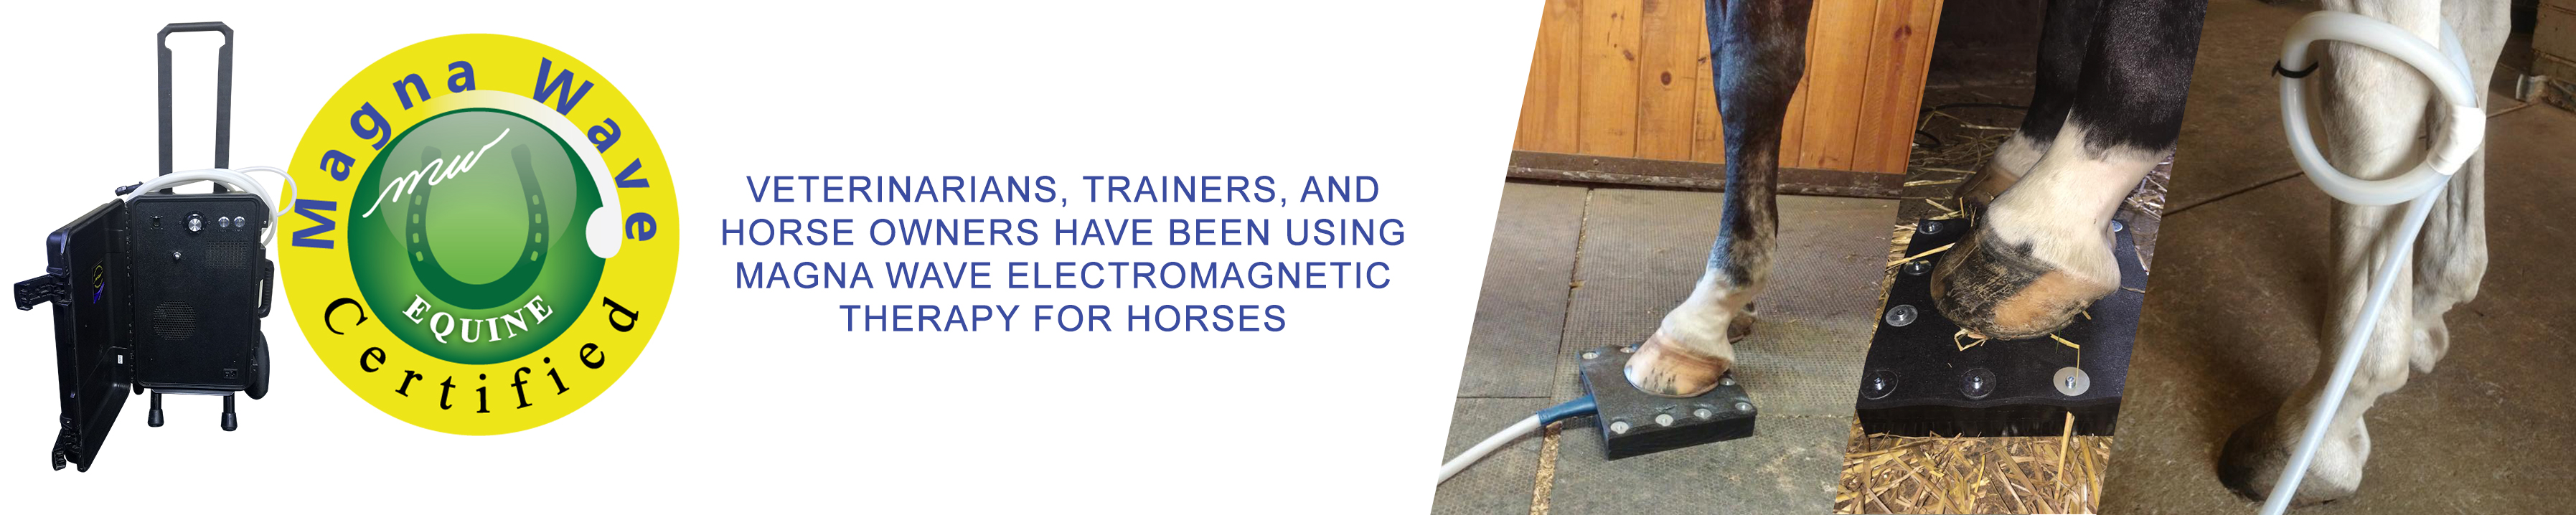 Magna Wave Certified Veterinarians, trainers, and horse owners have been using Magna Wave electromagnetic therapy for horses.